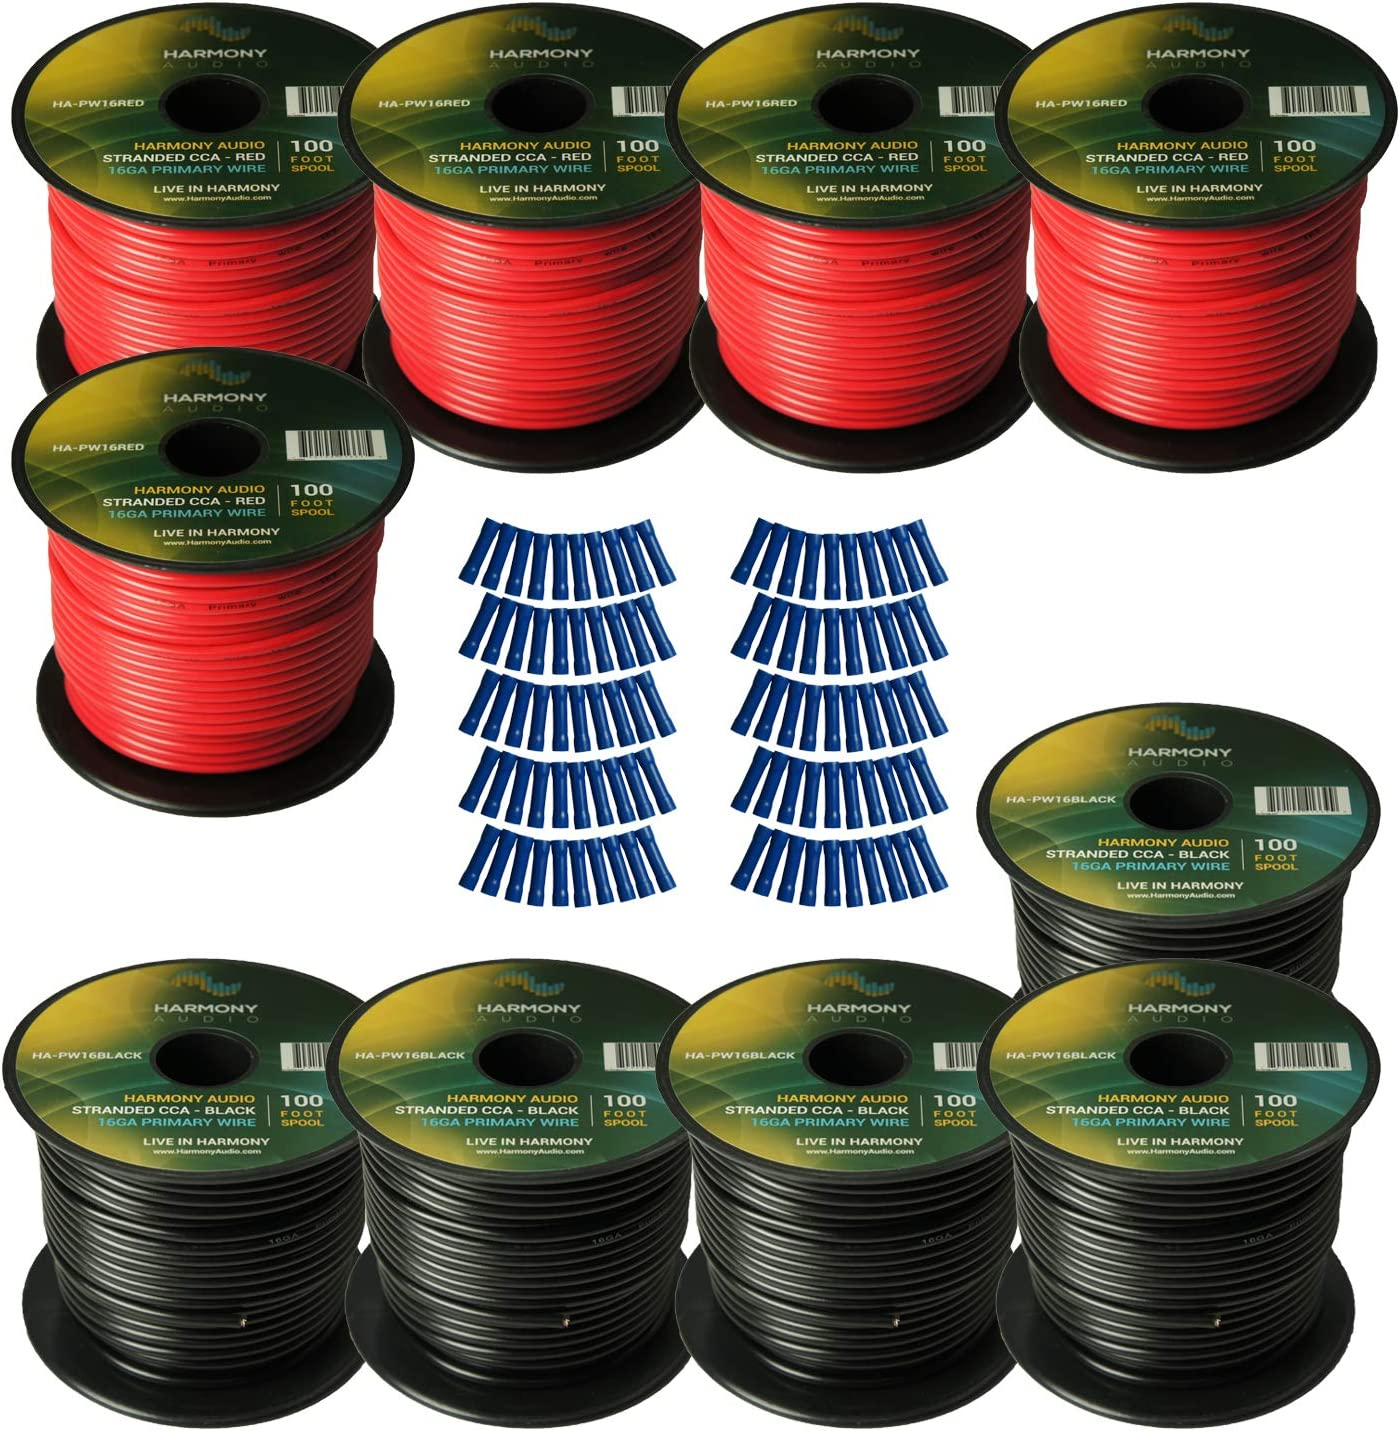 Harmony Audio Primary Single Conductor 16 Gauge Power or Ground Wire - 10 Rolls - 1000 Feet - Red & Black for Car Audio/Trailer/Model Train/Remote 81aX9WuEZkL